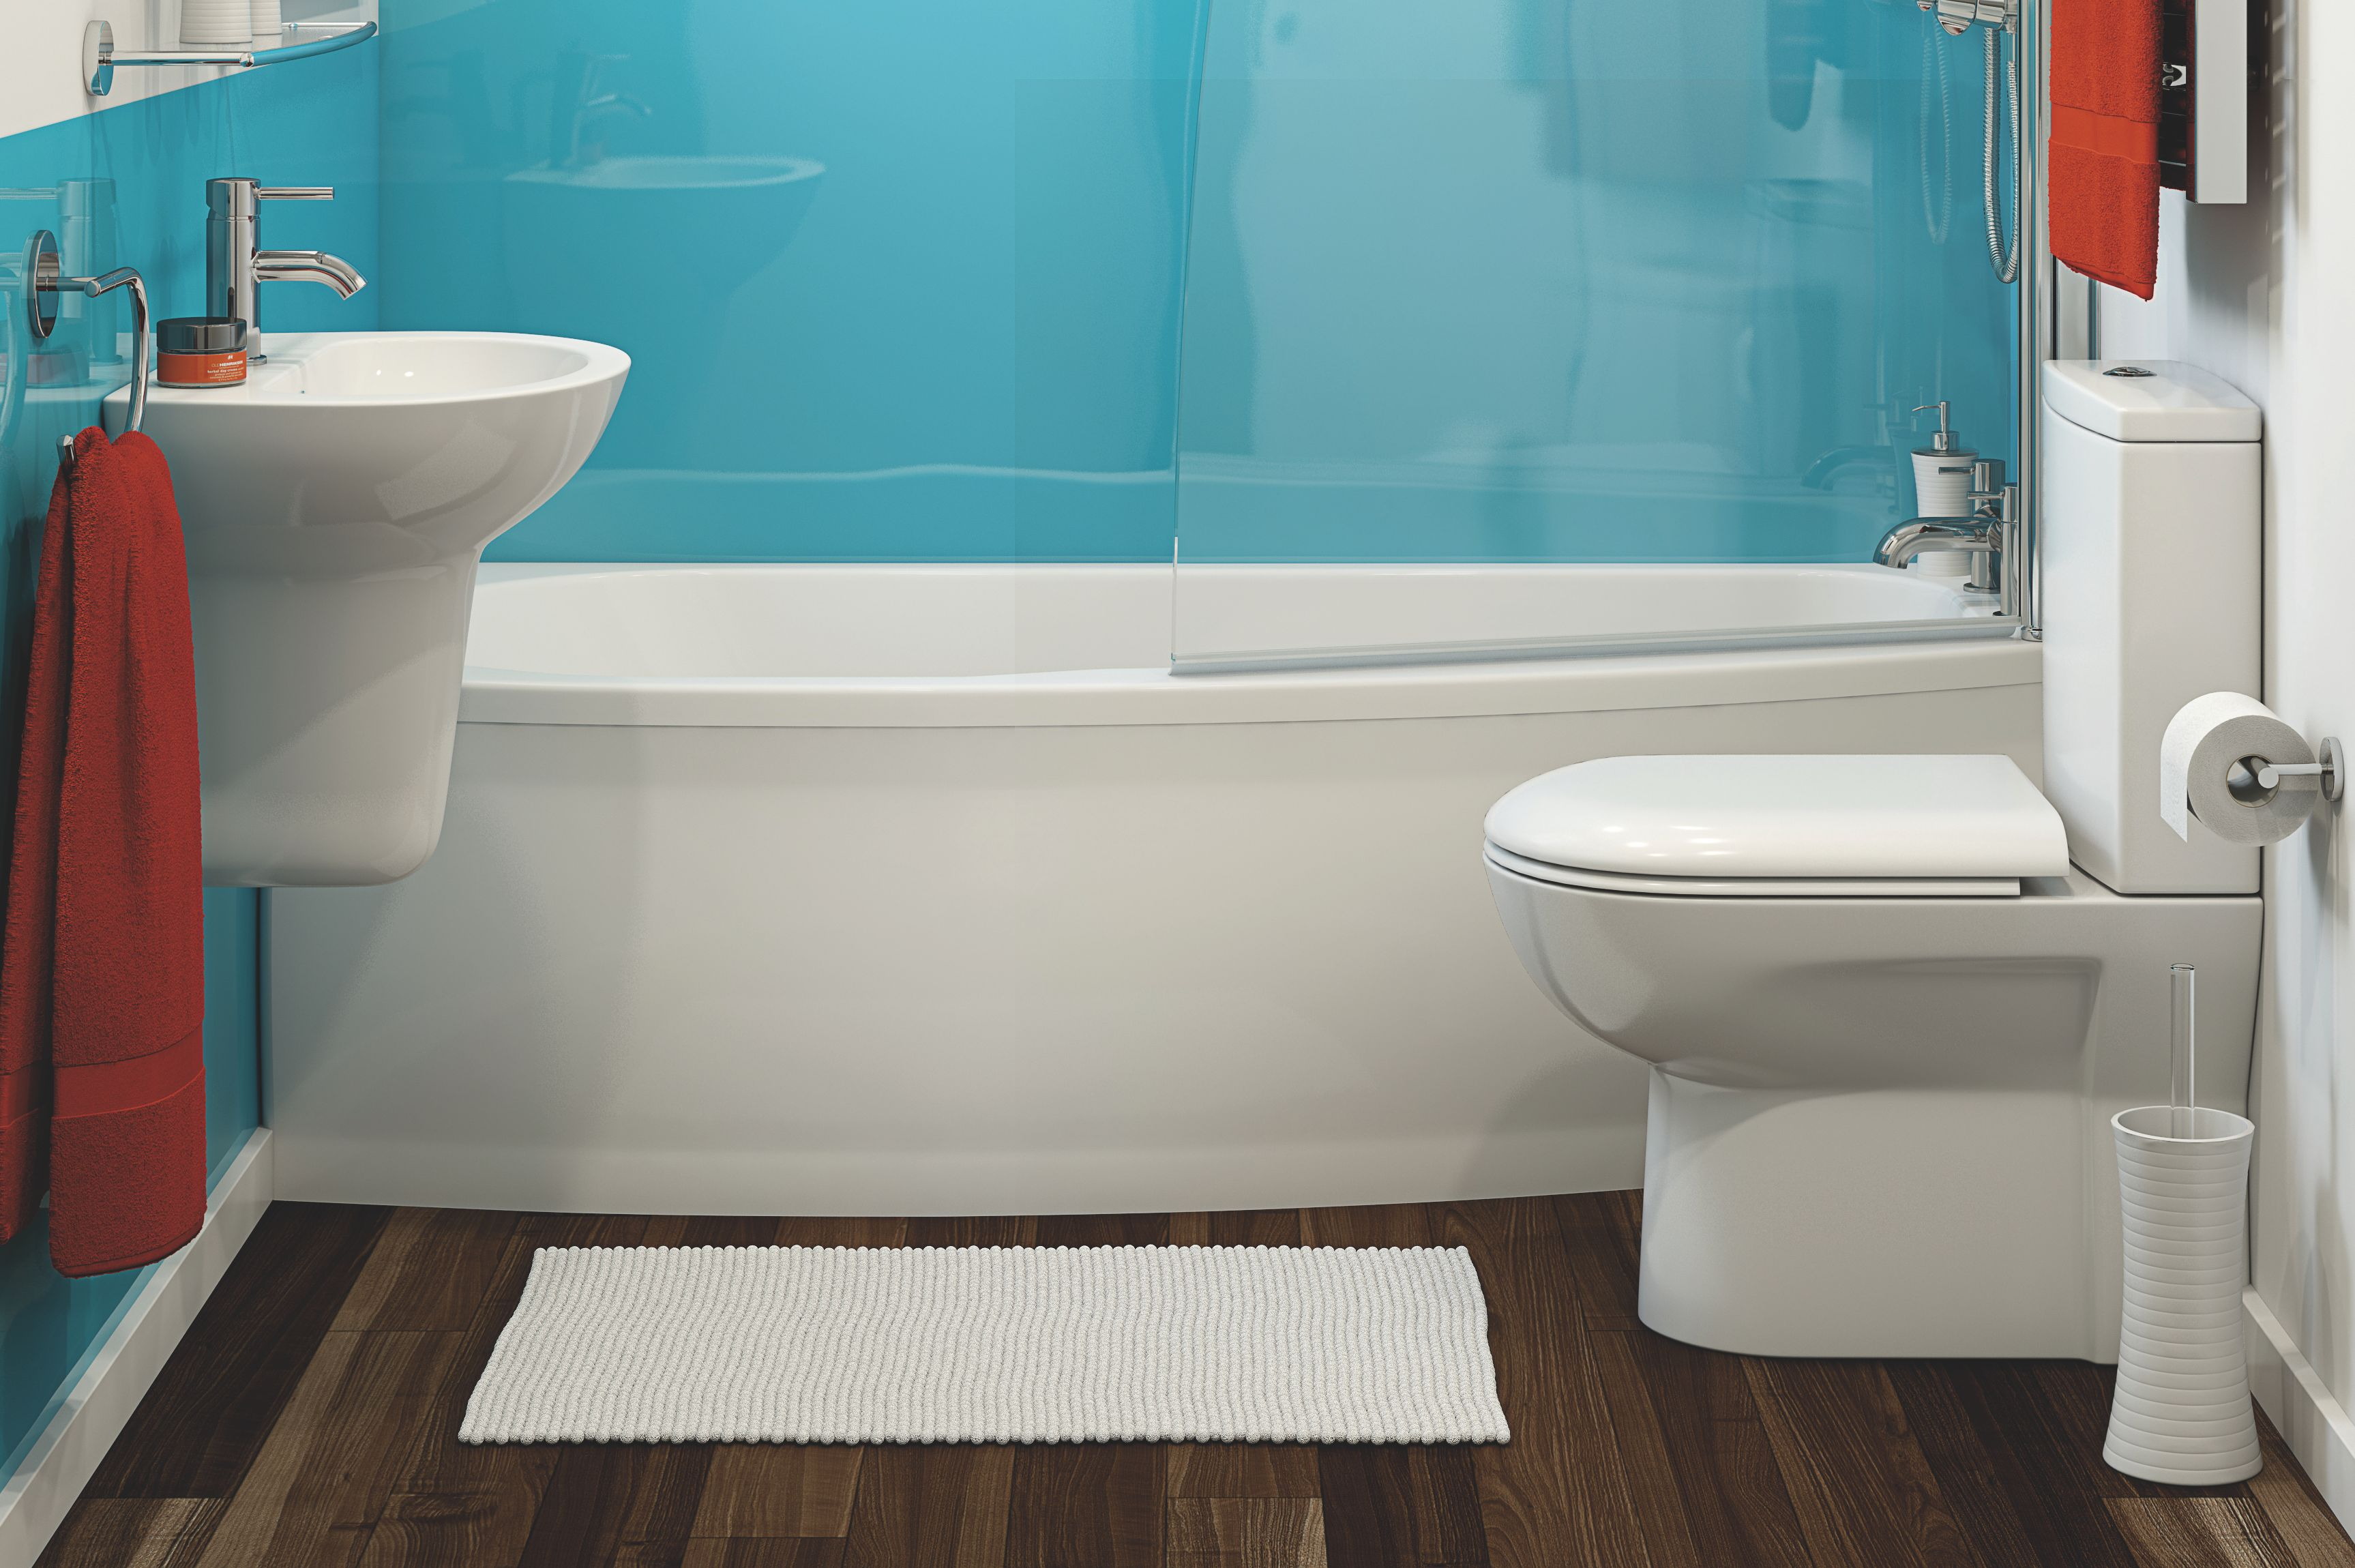 RETHINKING THE MODERN DAY BATHROOM: An Insightful Look At Our Modern Day  Bathrooms | Livin Spaces